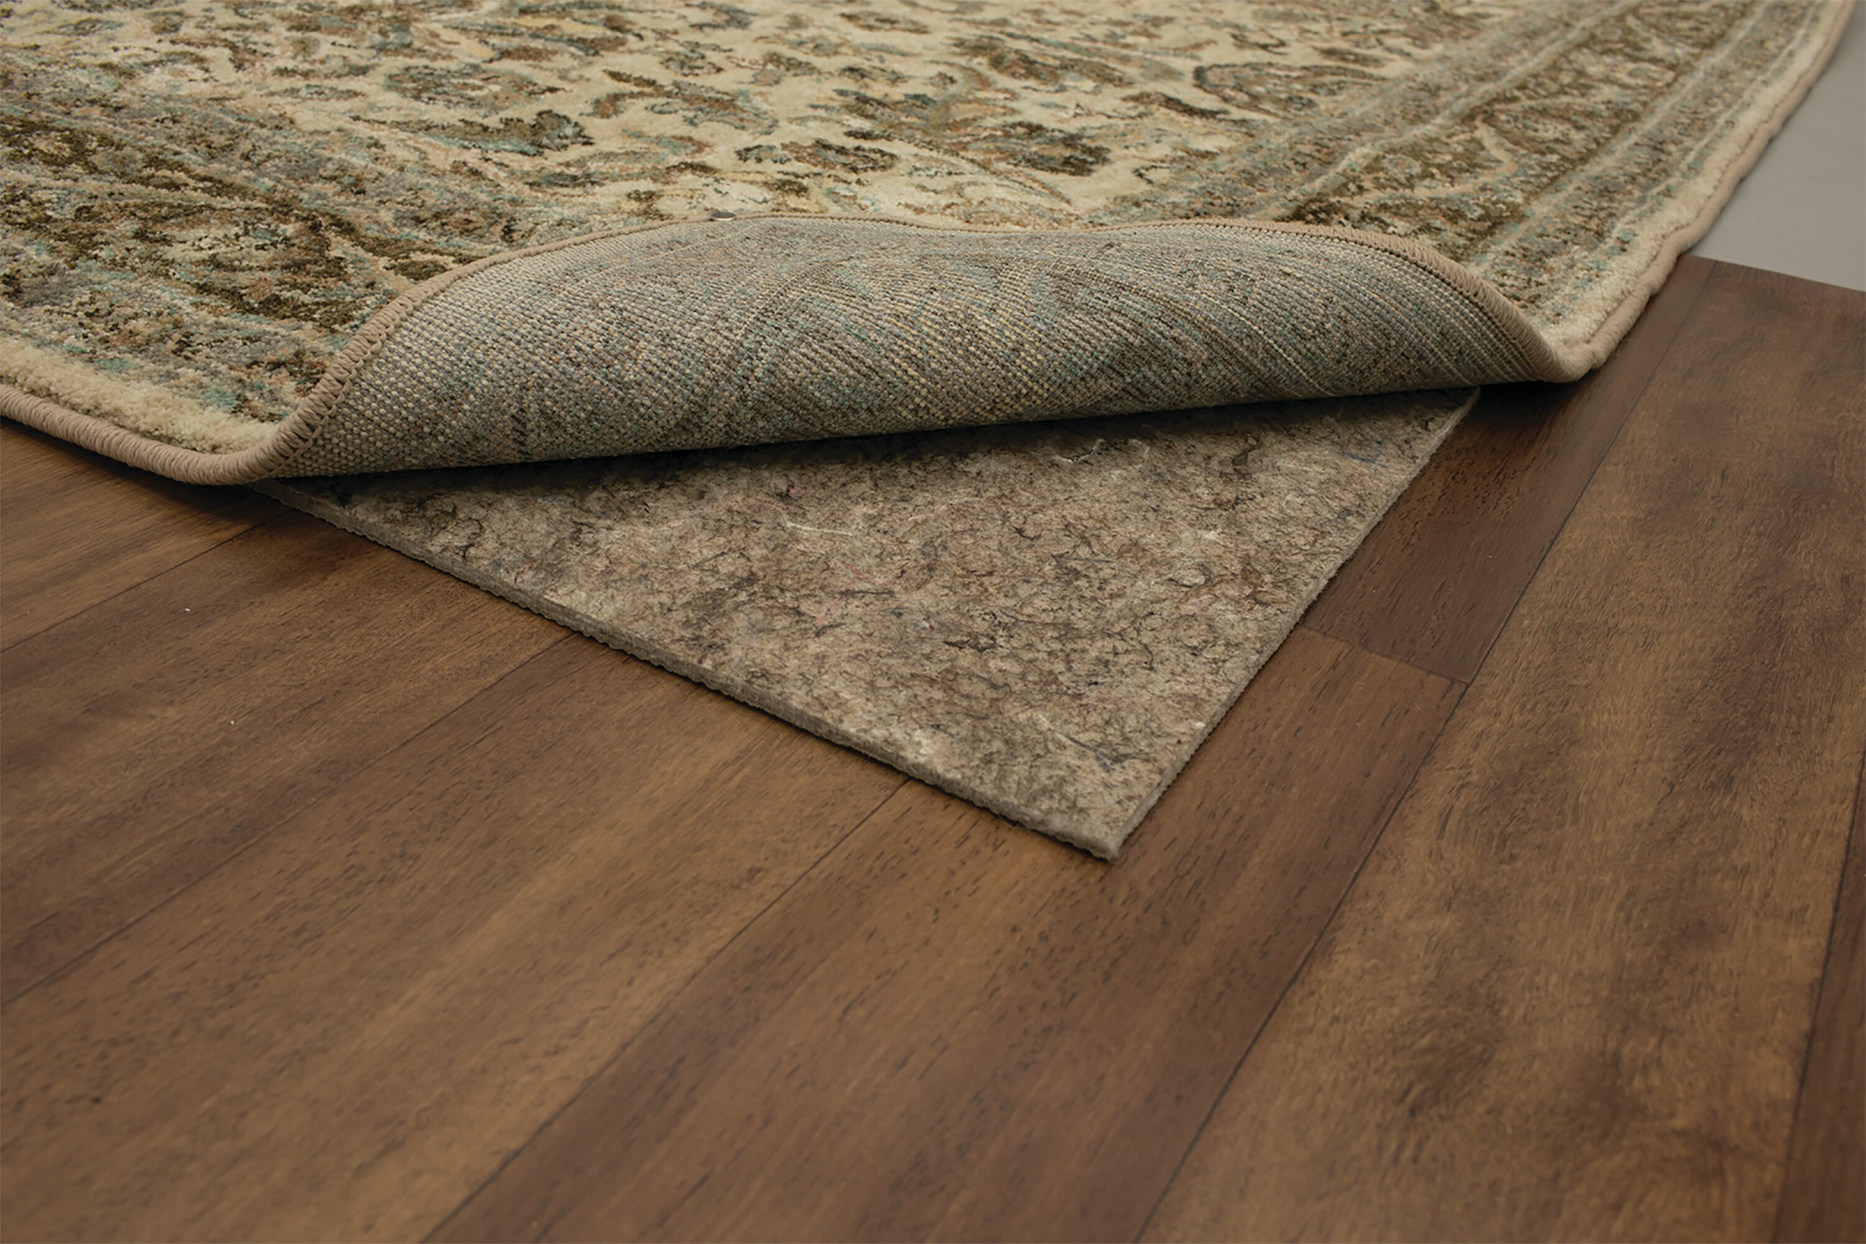 Best Rug Pads For Any Carpet Or Floor, Rug Pad For Laminate Flooring